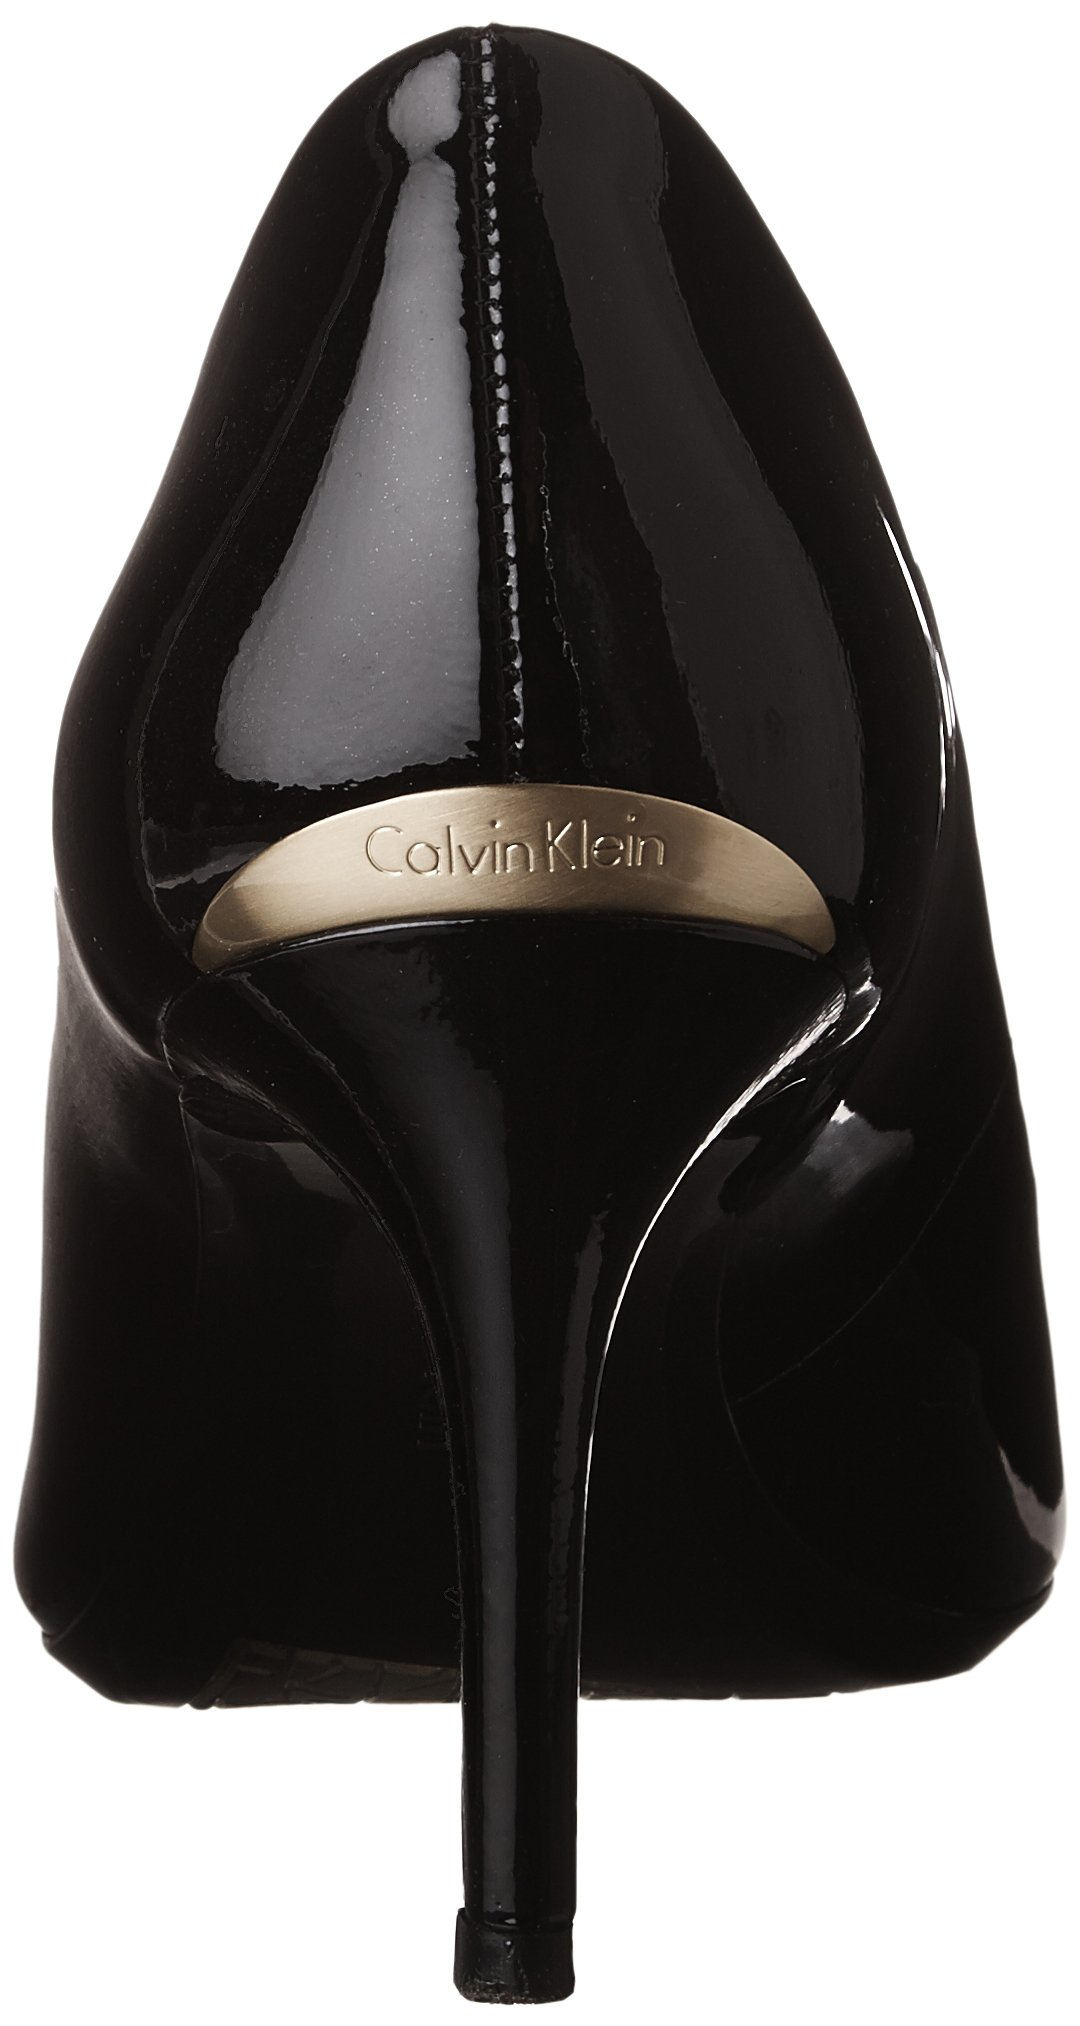 Calvin Klein Women's Gayle  Dress Pump,Black Patent, 7.5 M by Calvin Klein (Image #2)